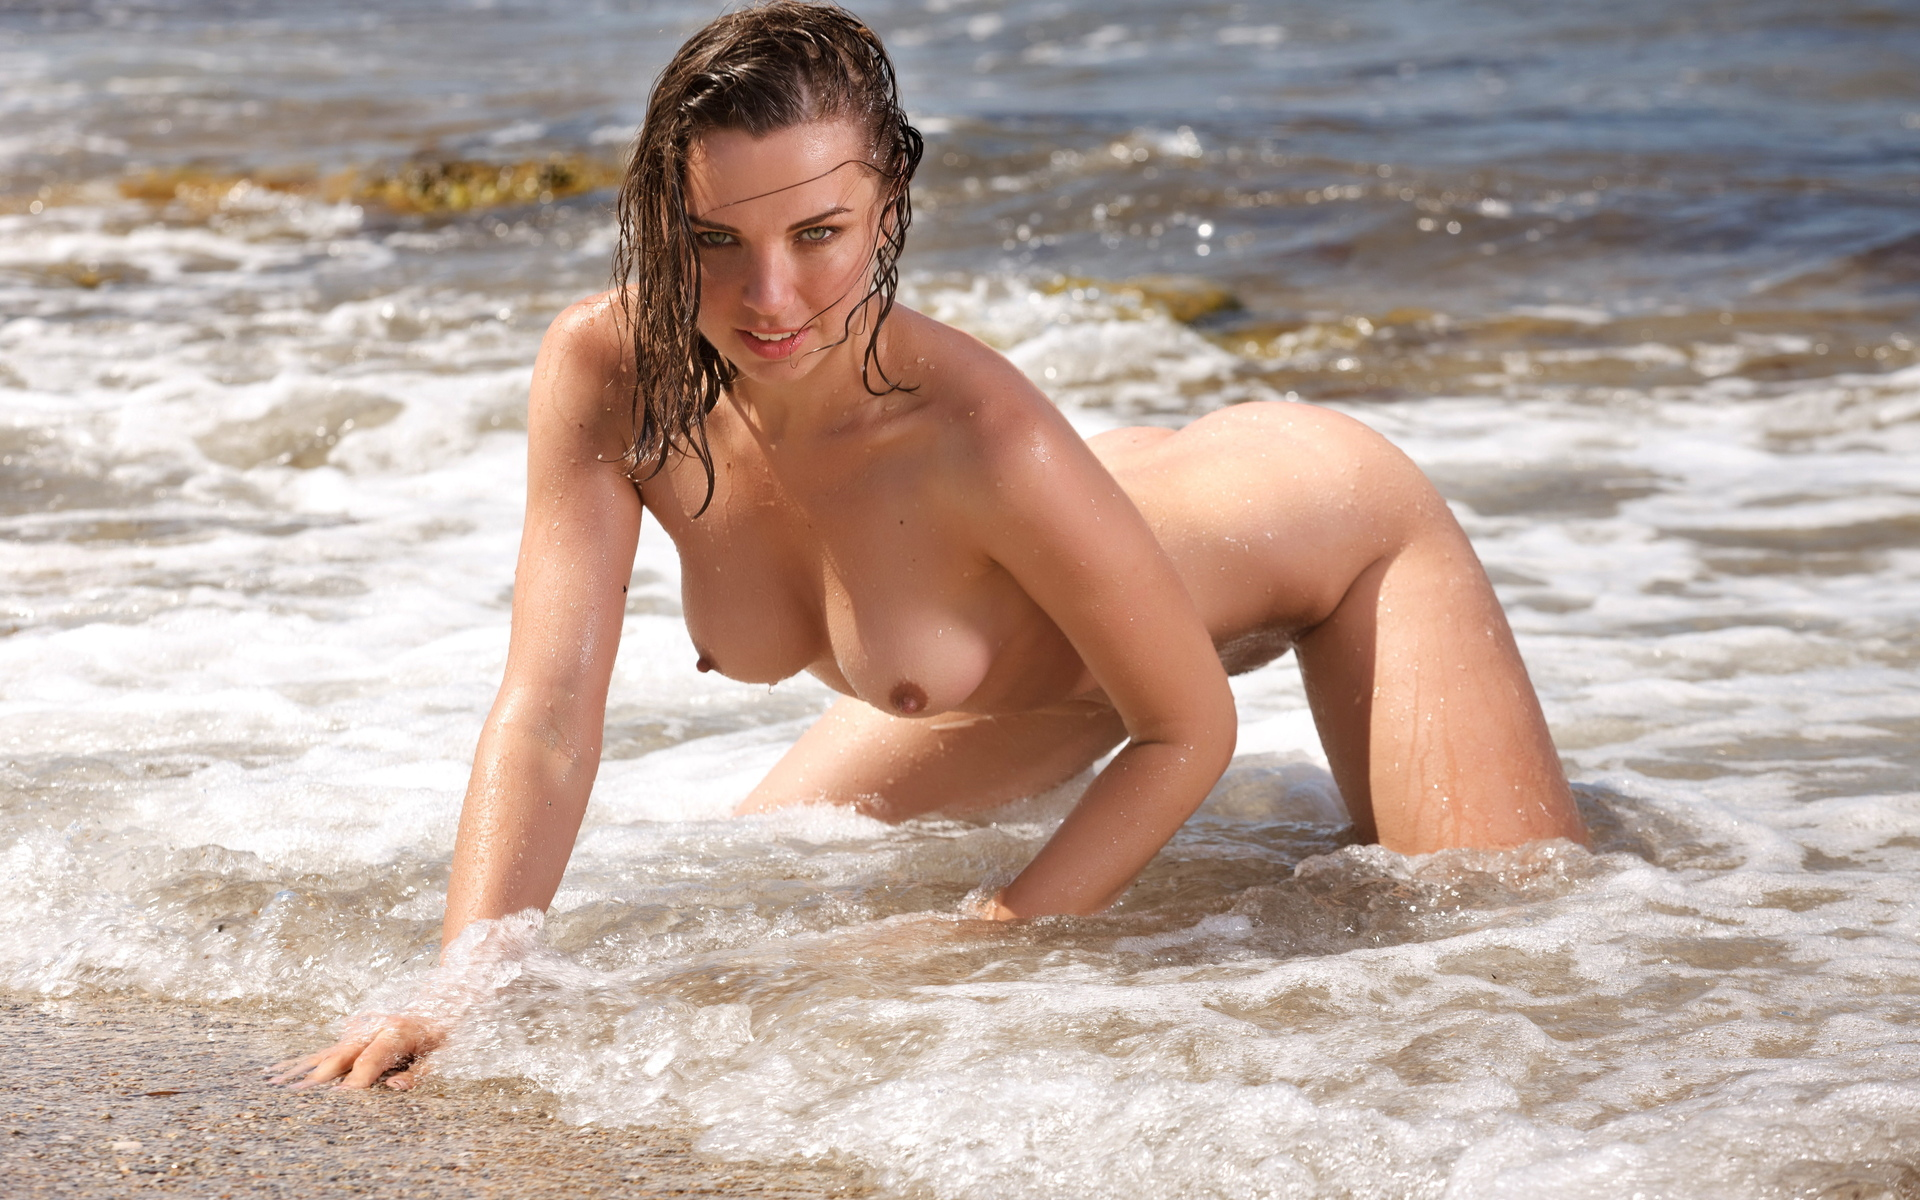 hot-women-at-a-nude-beach-anal-ass-facking